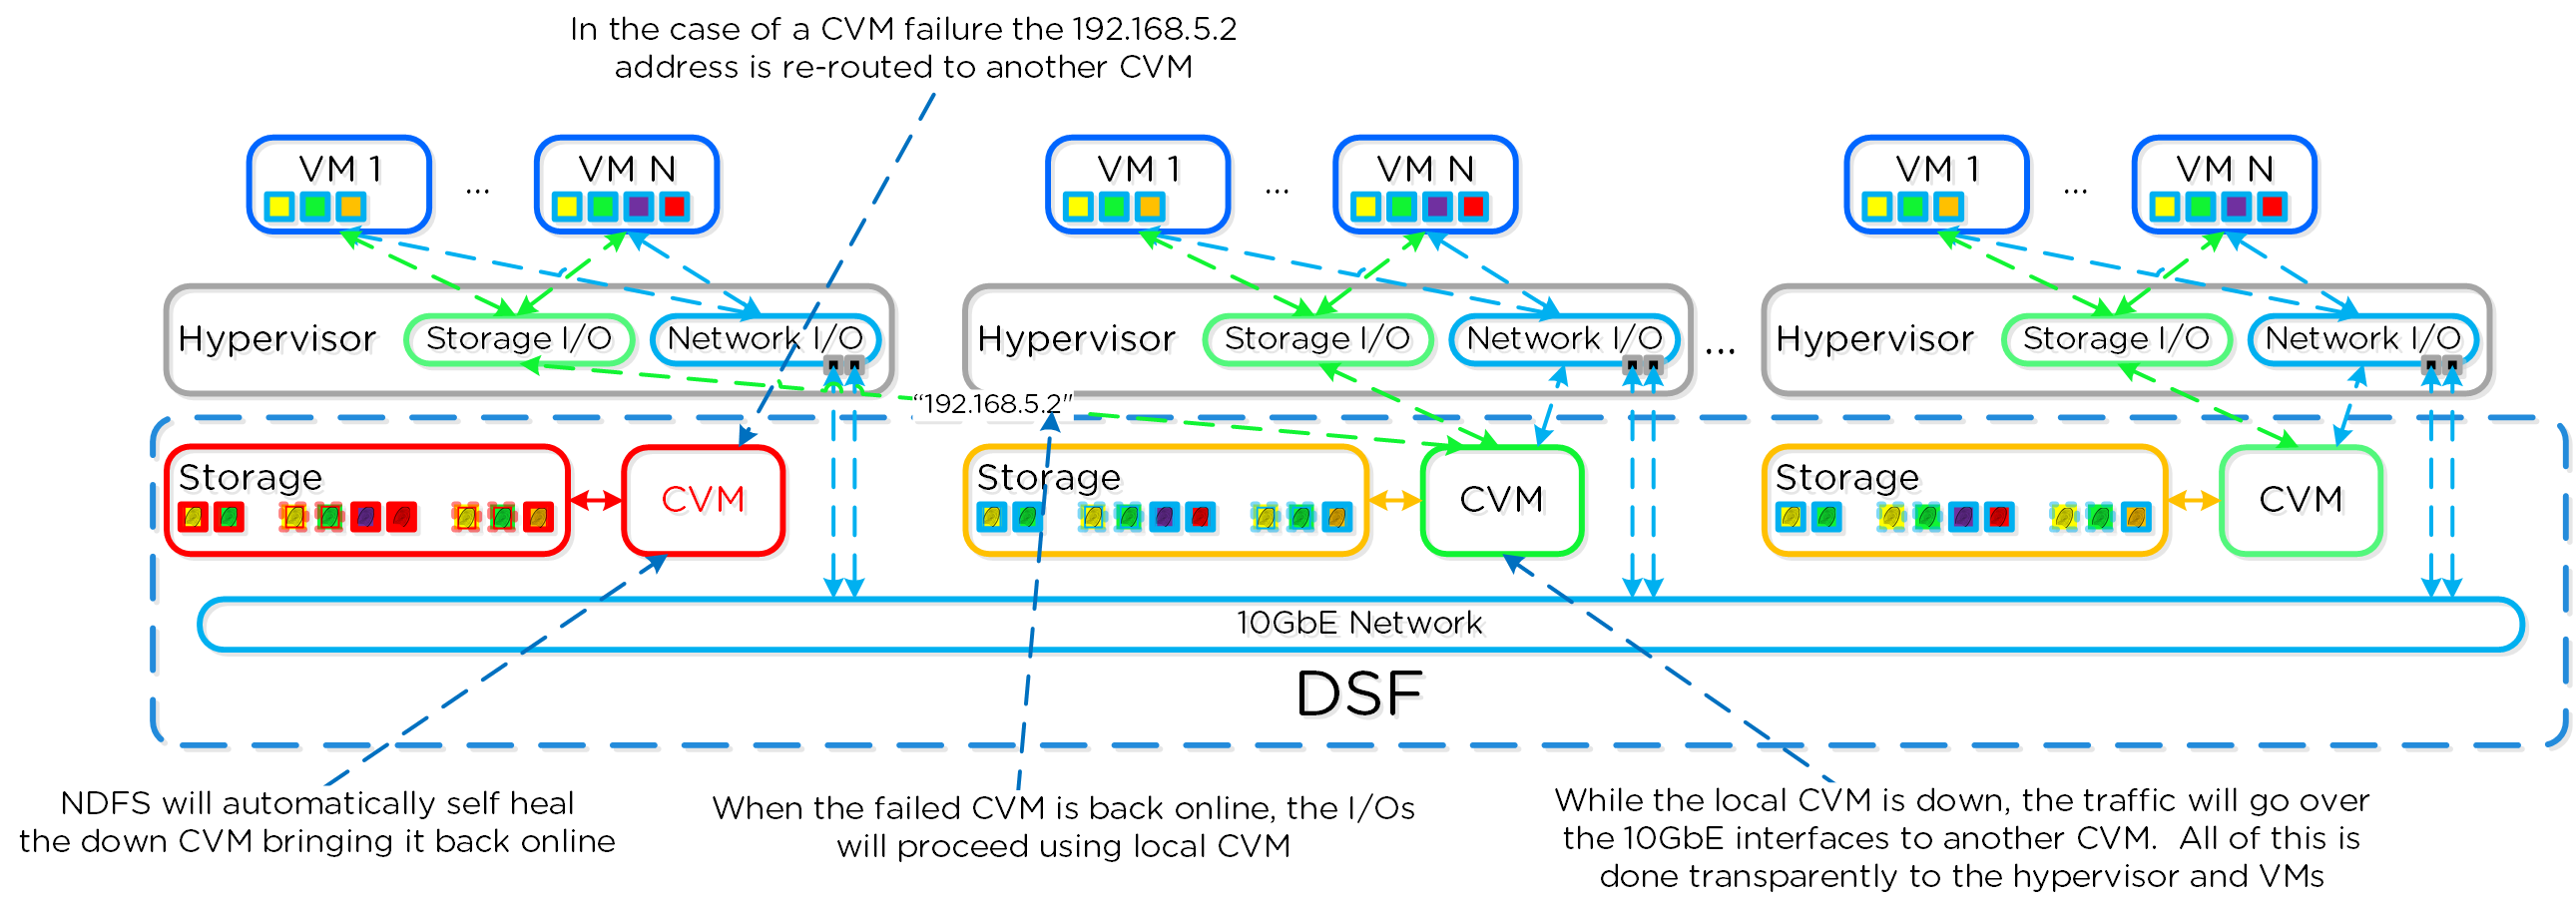 ESXi Host Networking - Local CVM Down